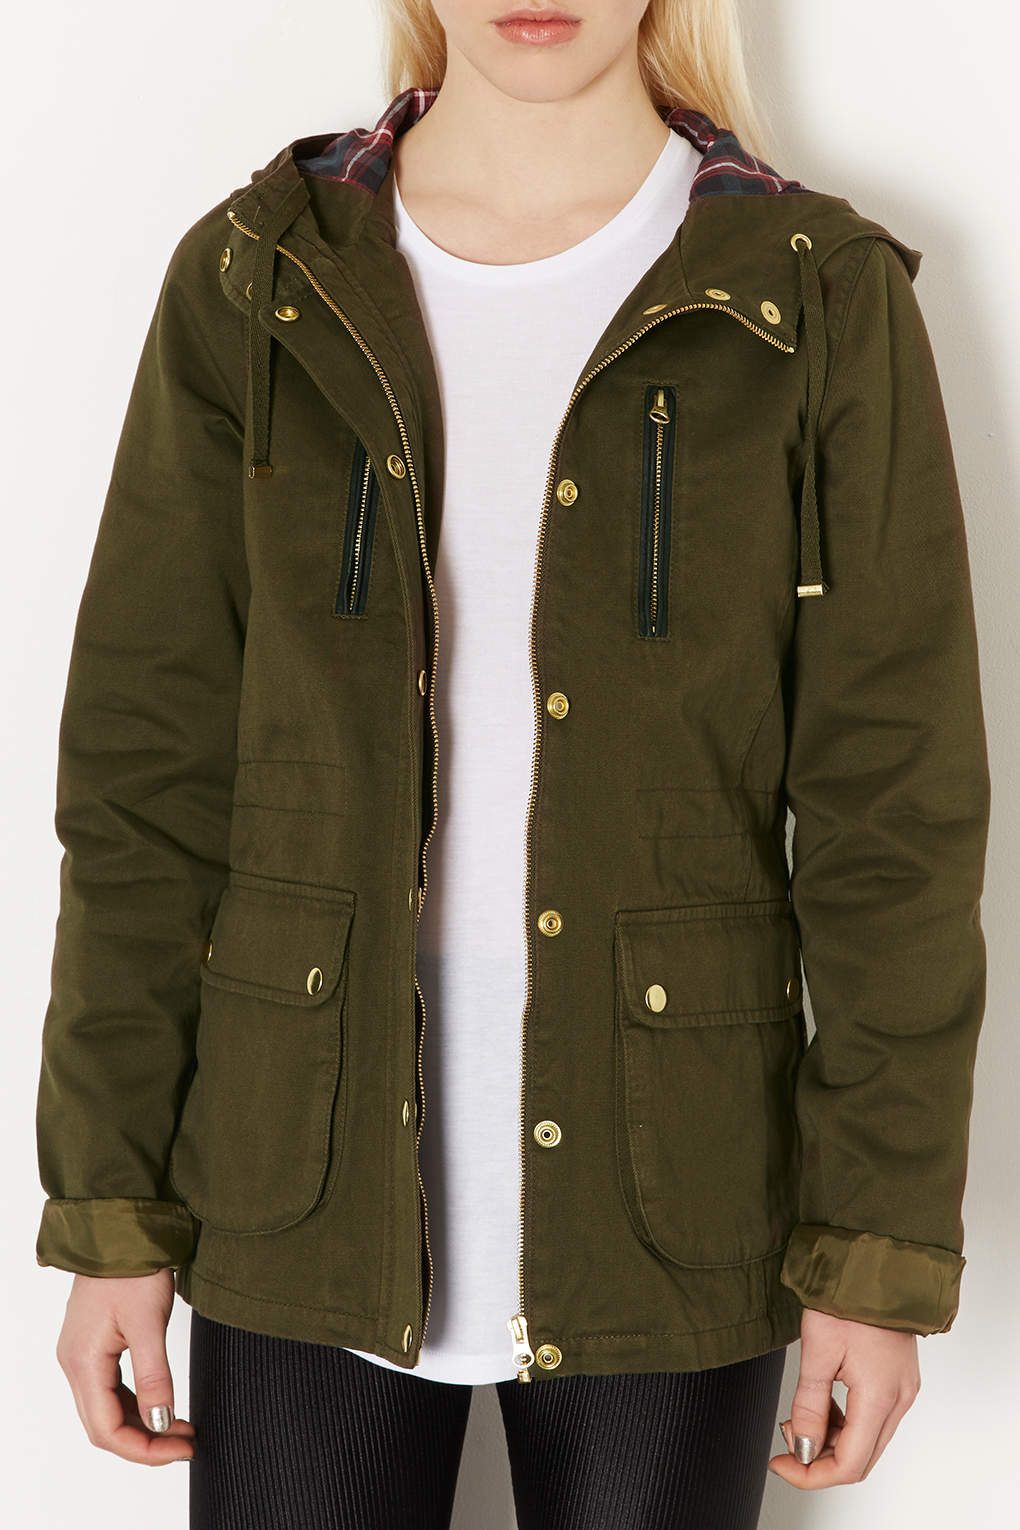 Topshop Tall Hooded Lightweight Jacket in Green   Lyst